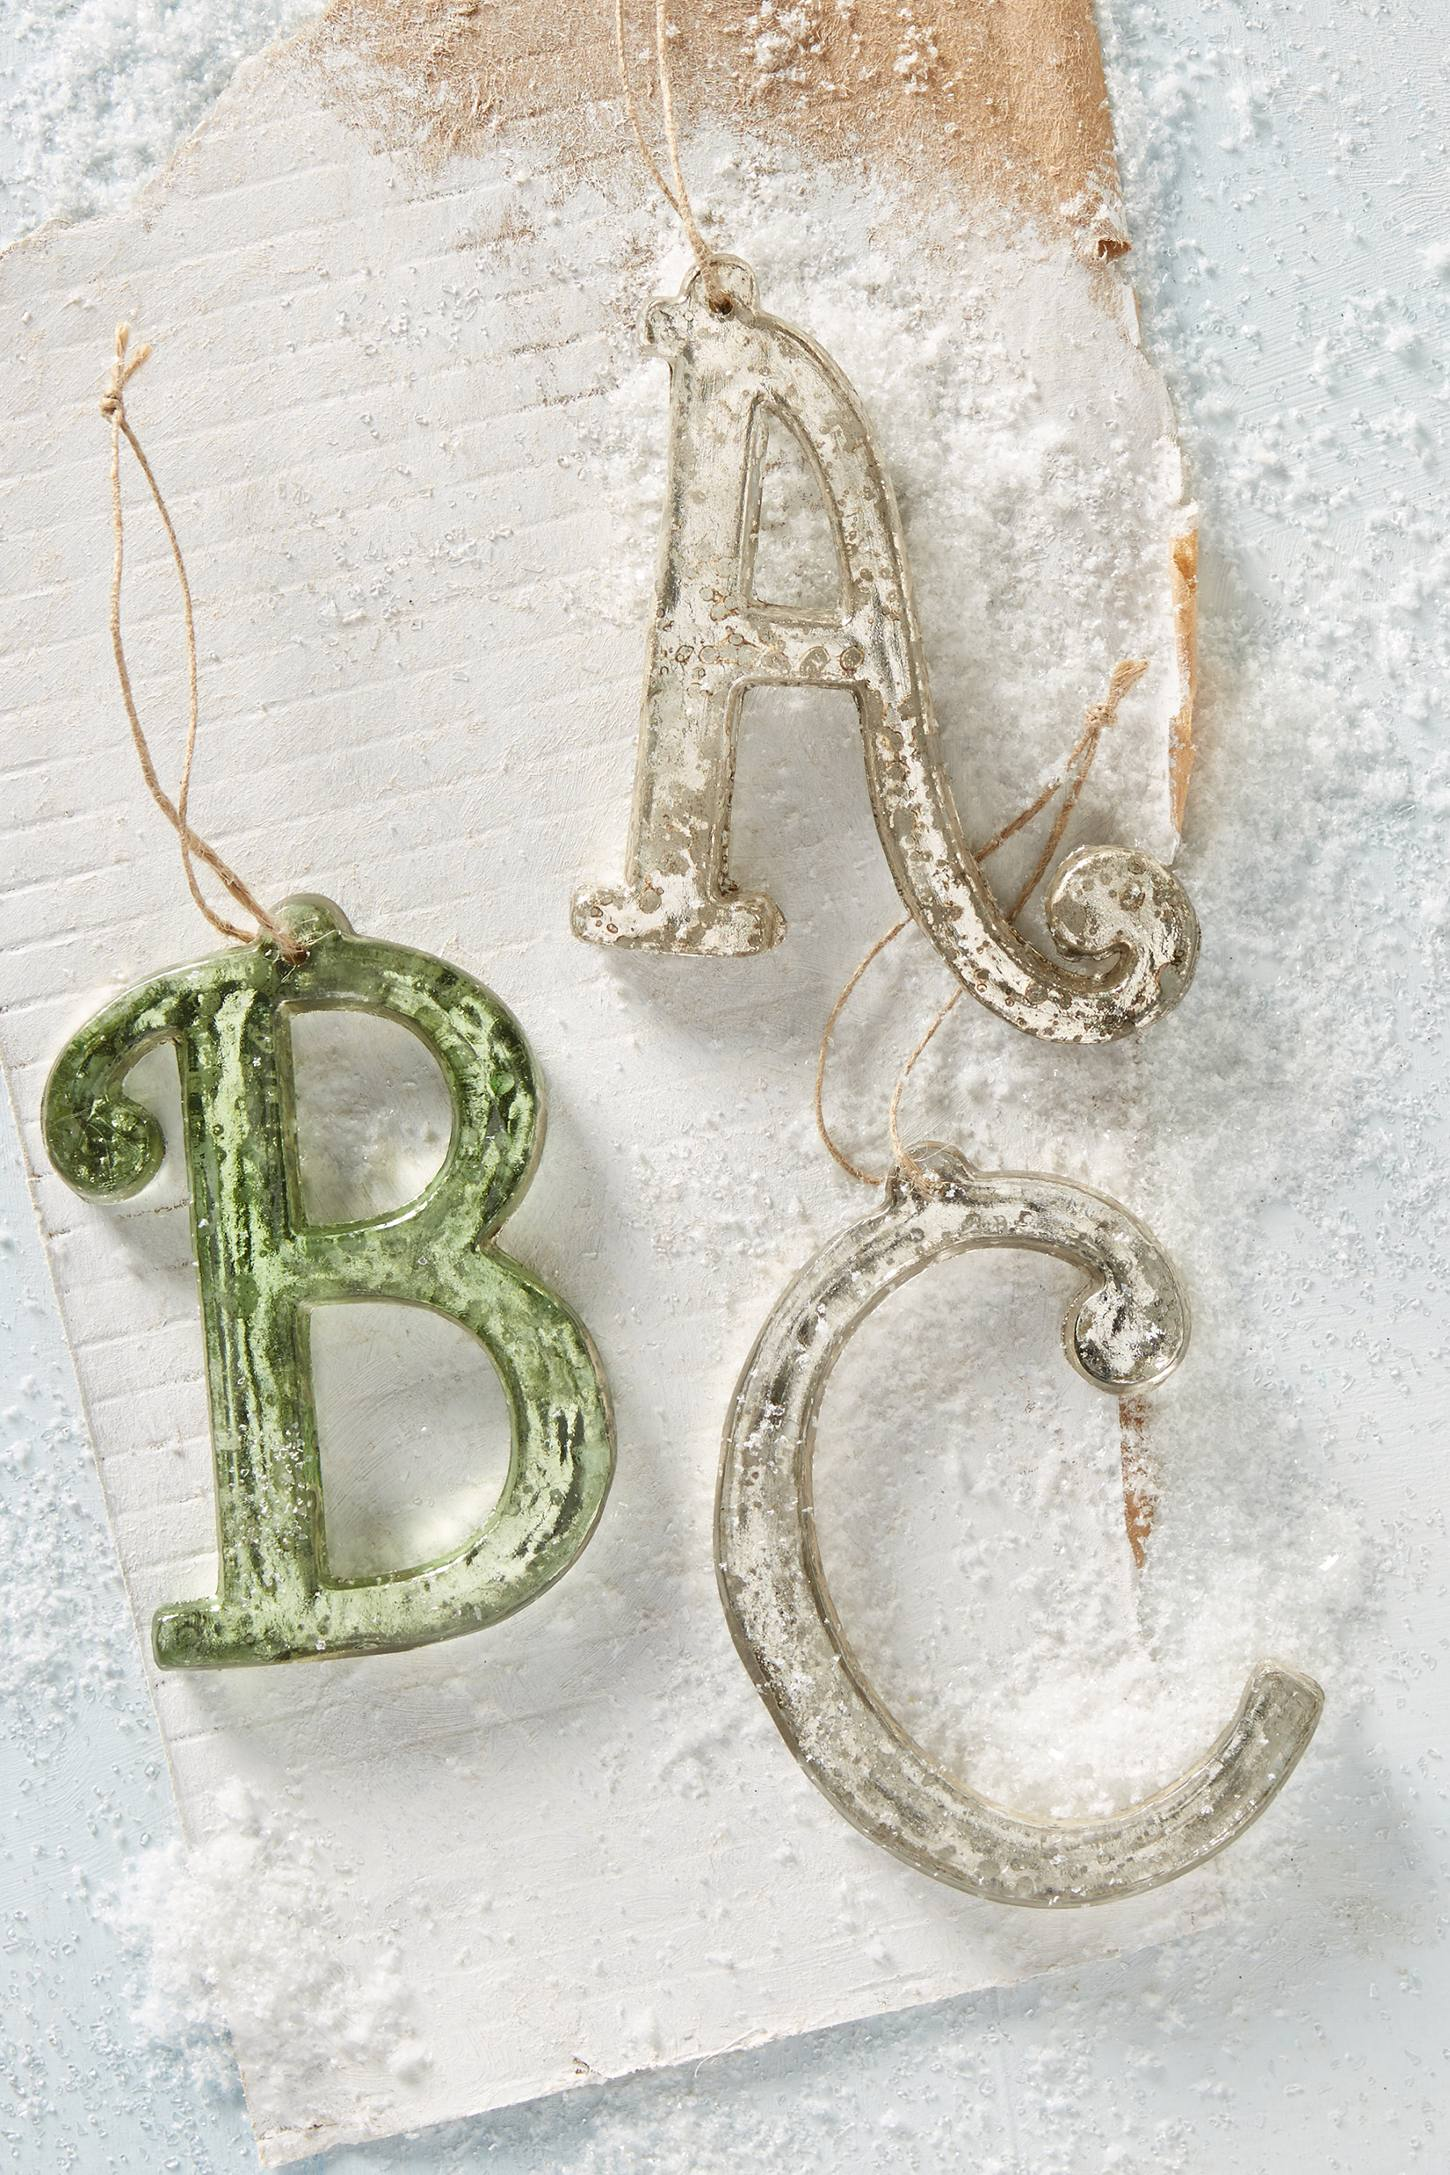 Mercury Glass Monogram Ornament